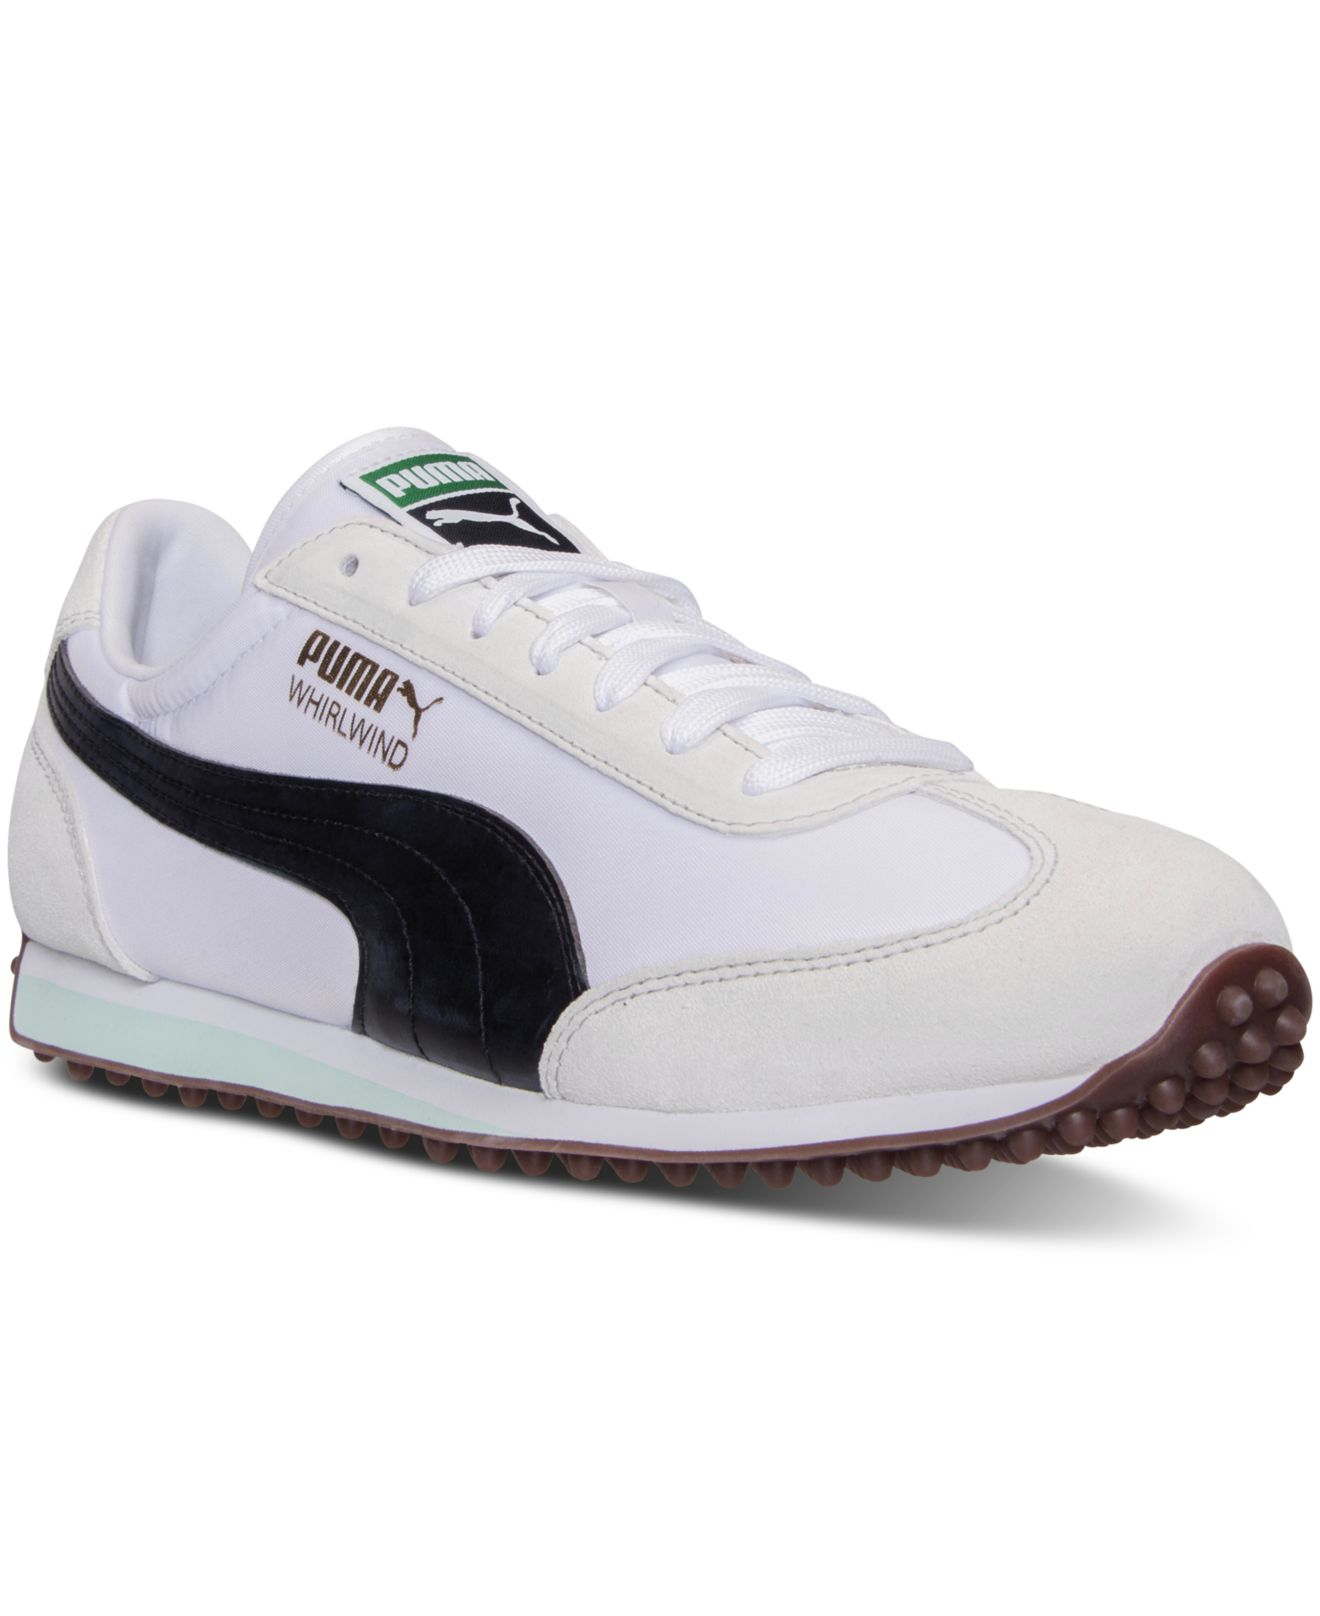 Mens Casual Everyday Nike Shoes